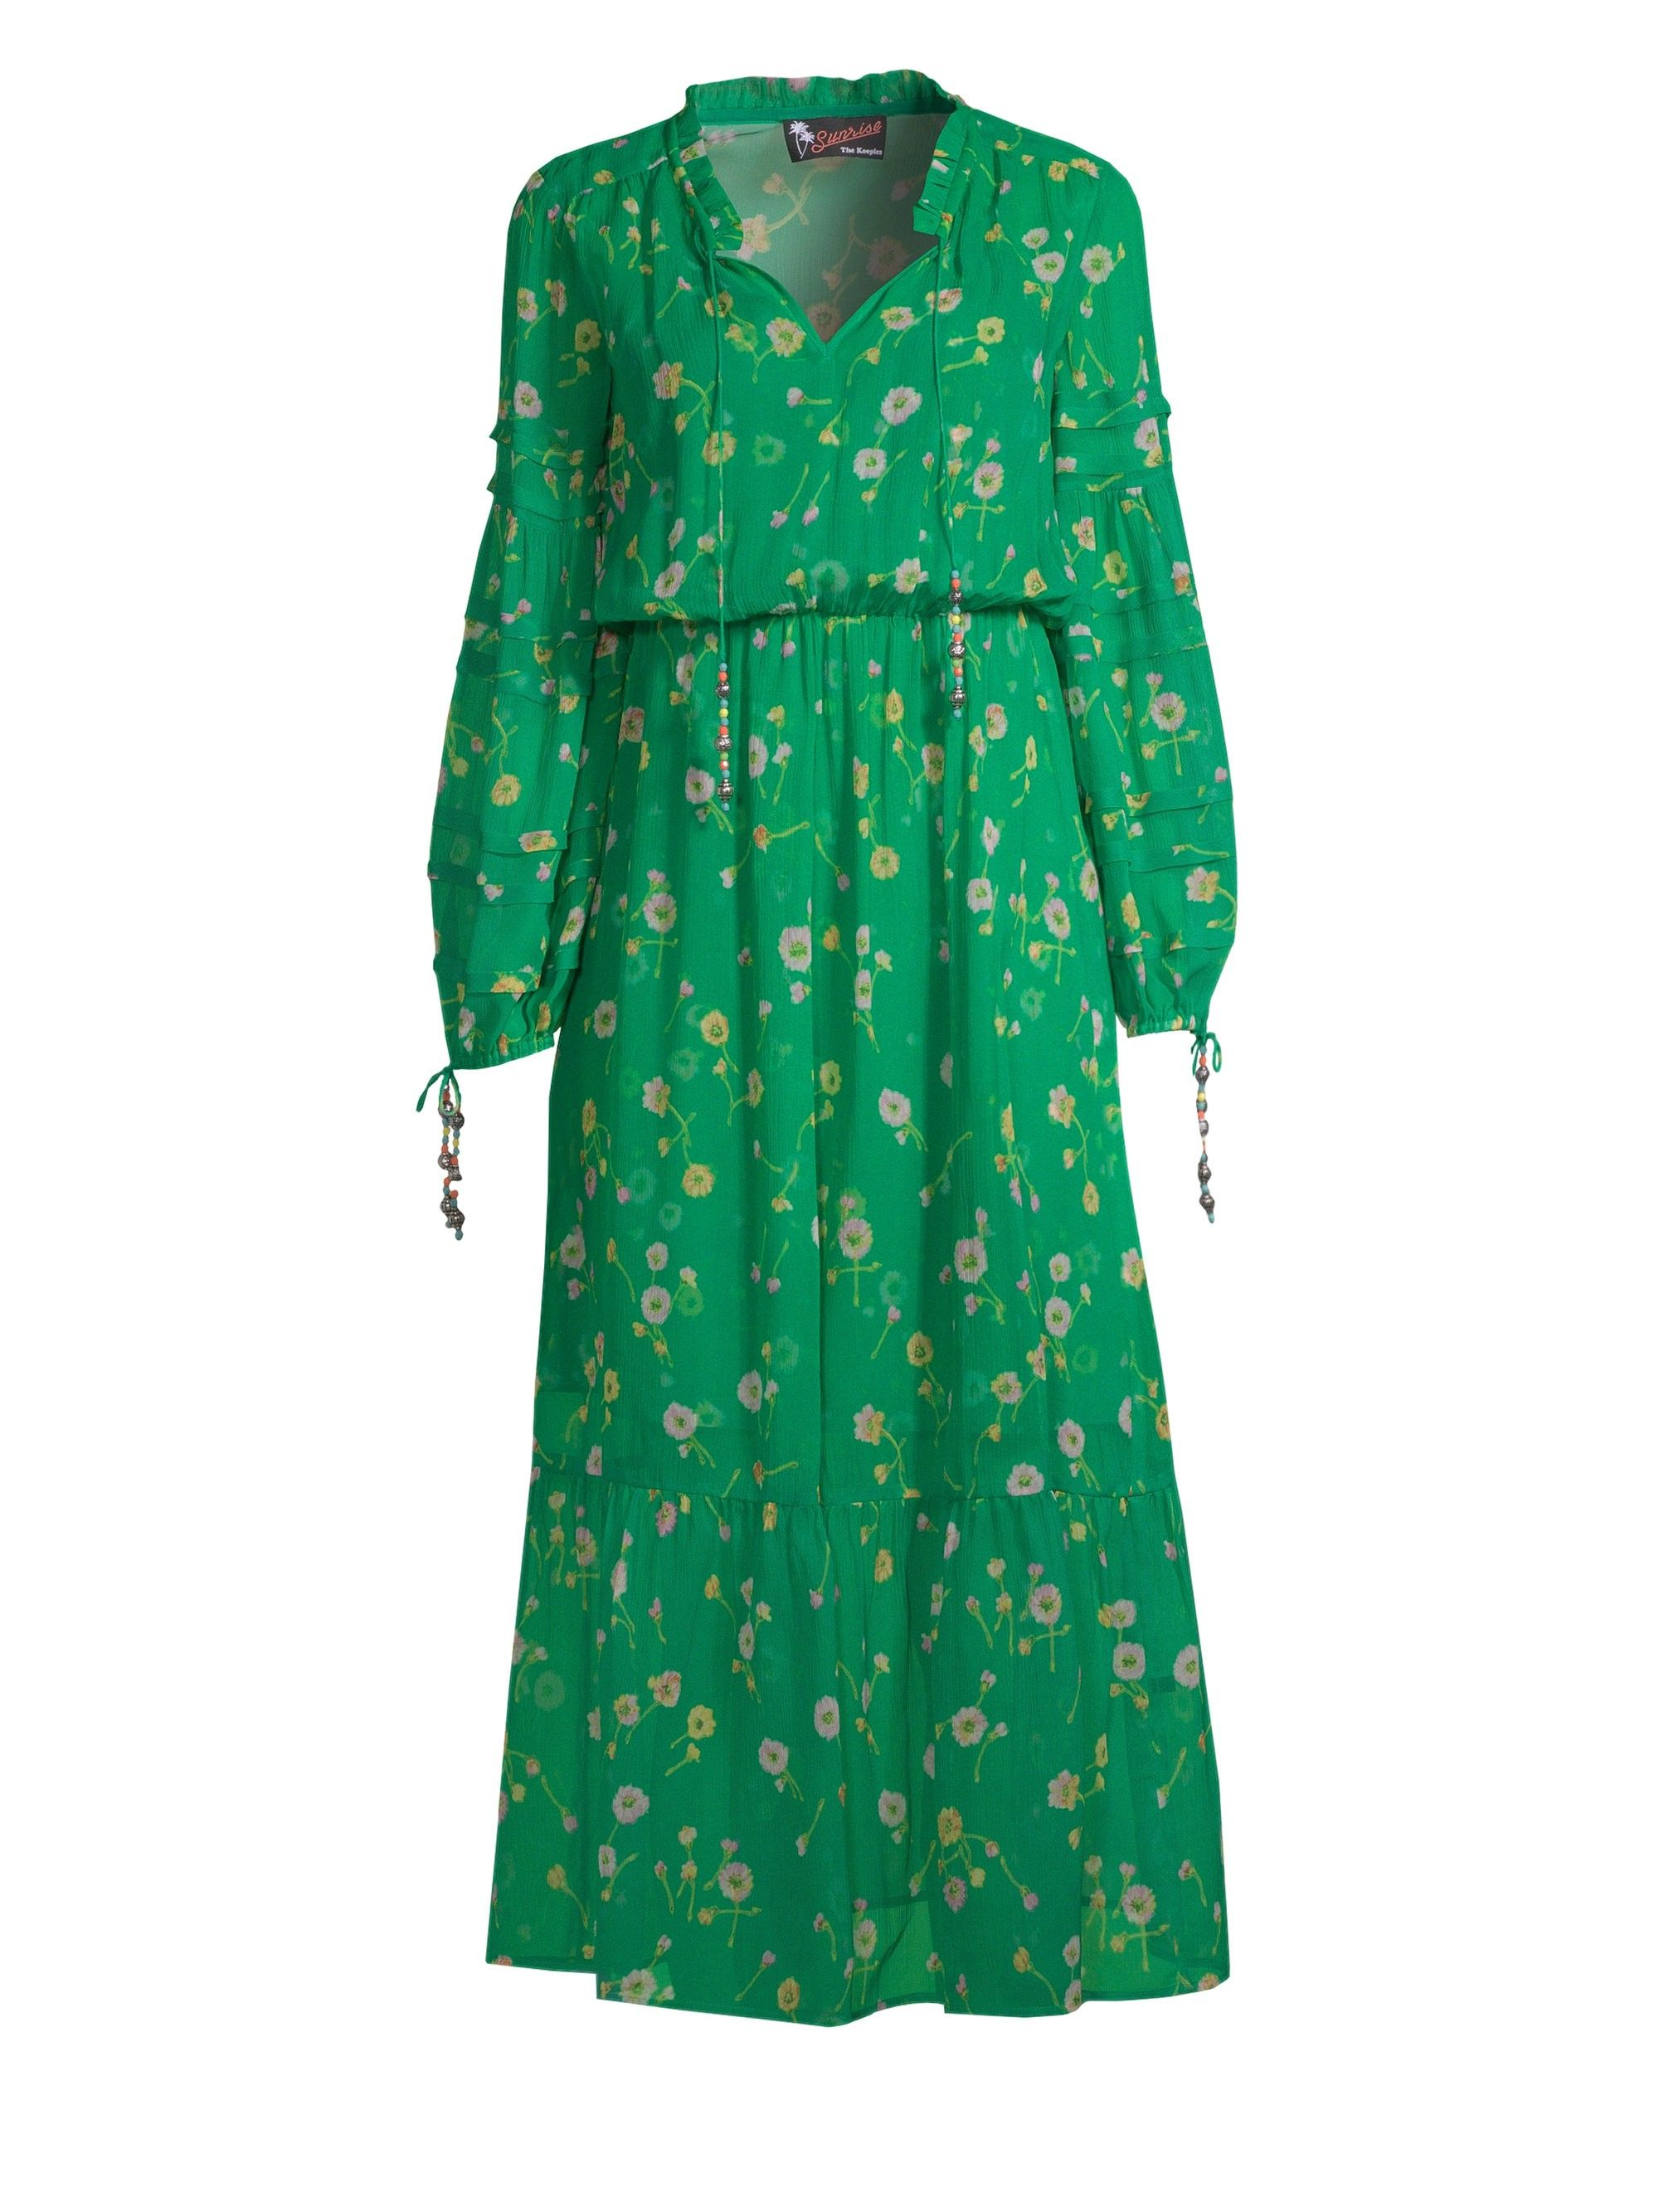 a83e1ec946 The Kooples Silk Floral-Print Dress - Green 4 | Products | Dresses ...